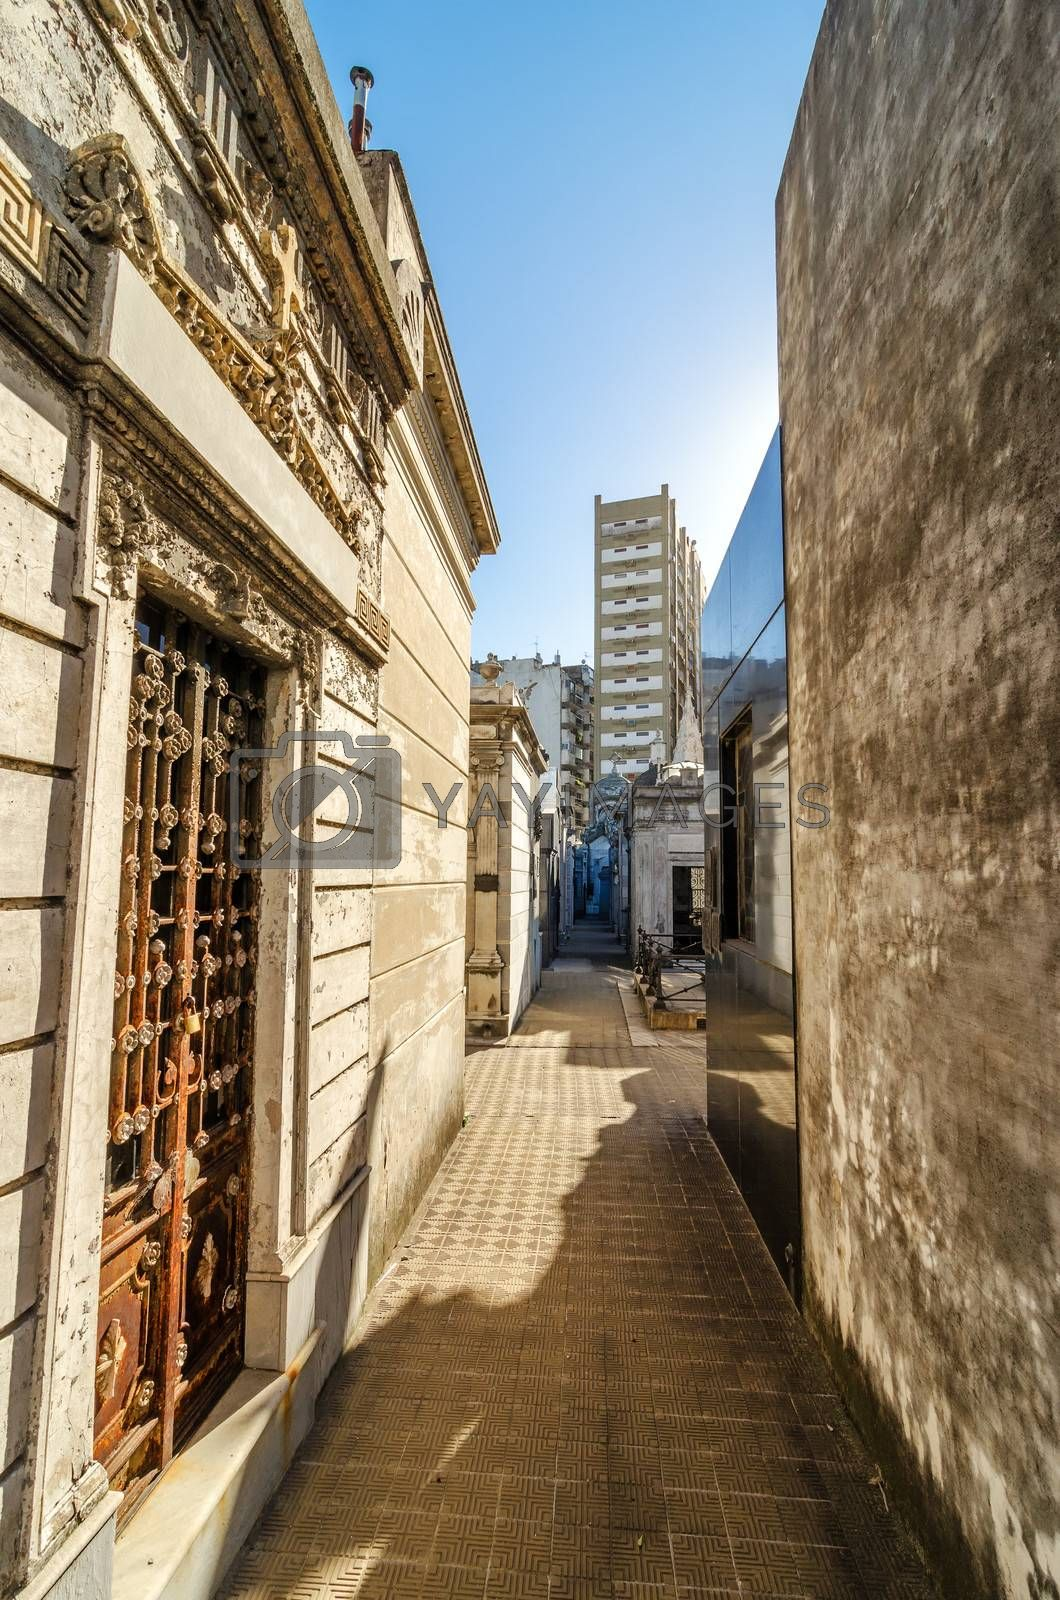 View of historic tombs in the famous Recoleta cemetery in Buenos Aires, Argentina